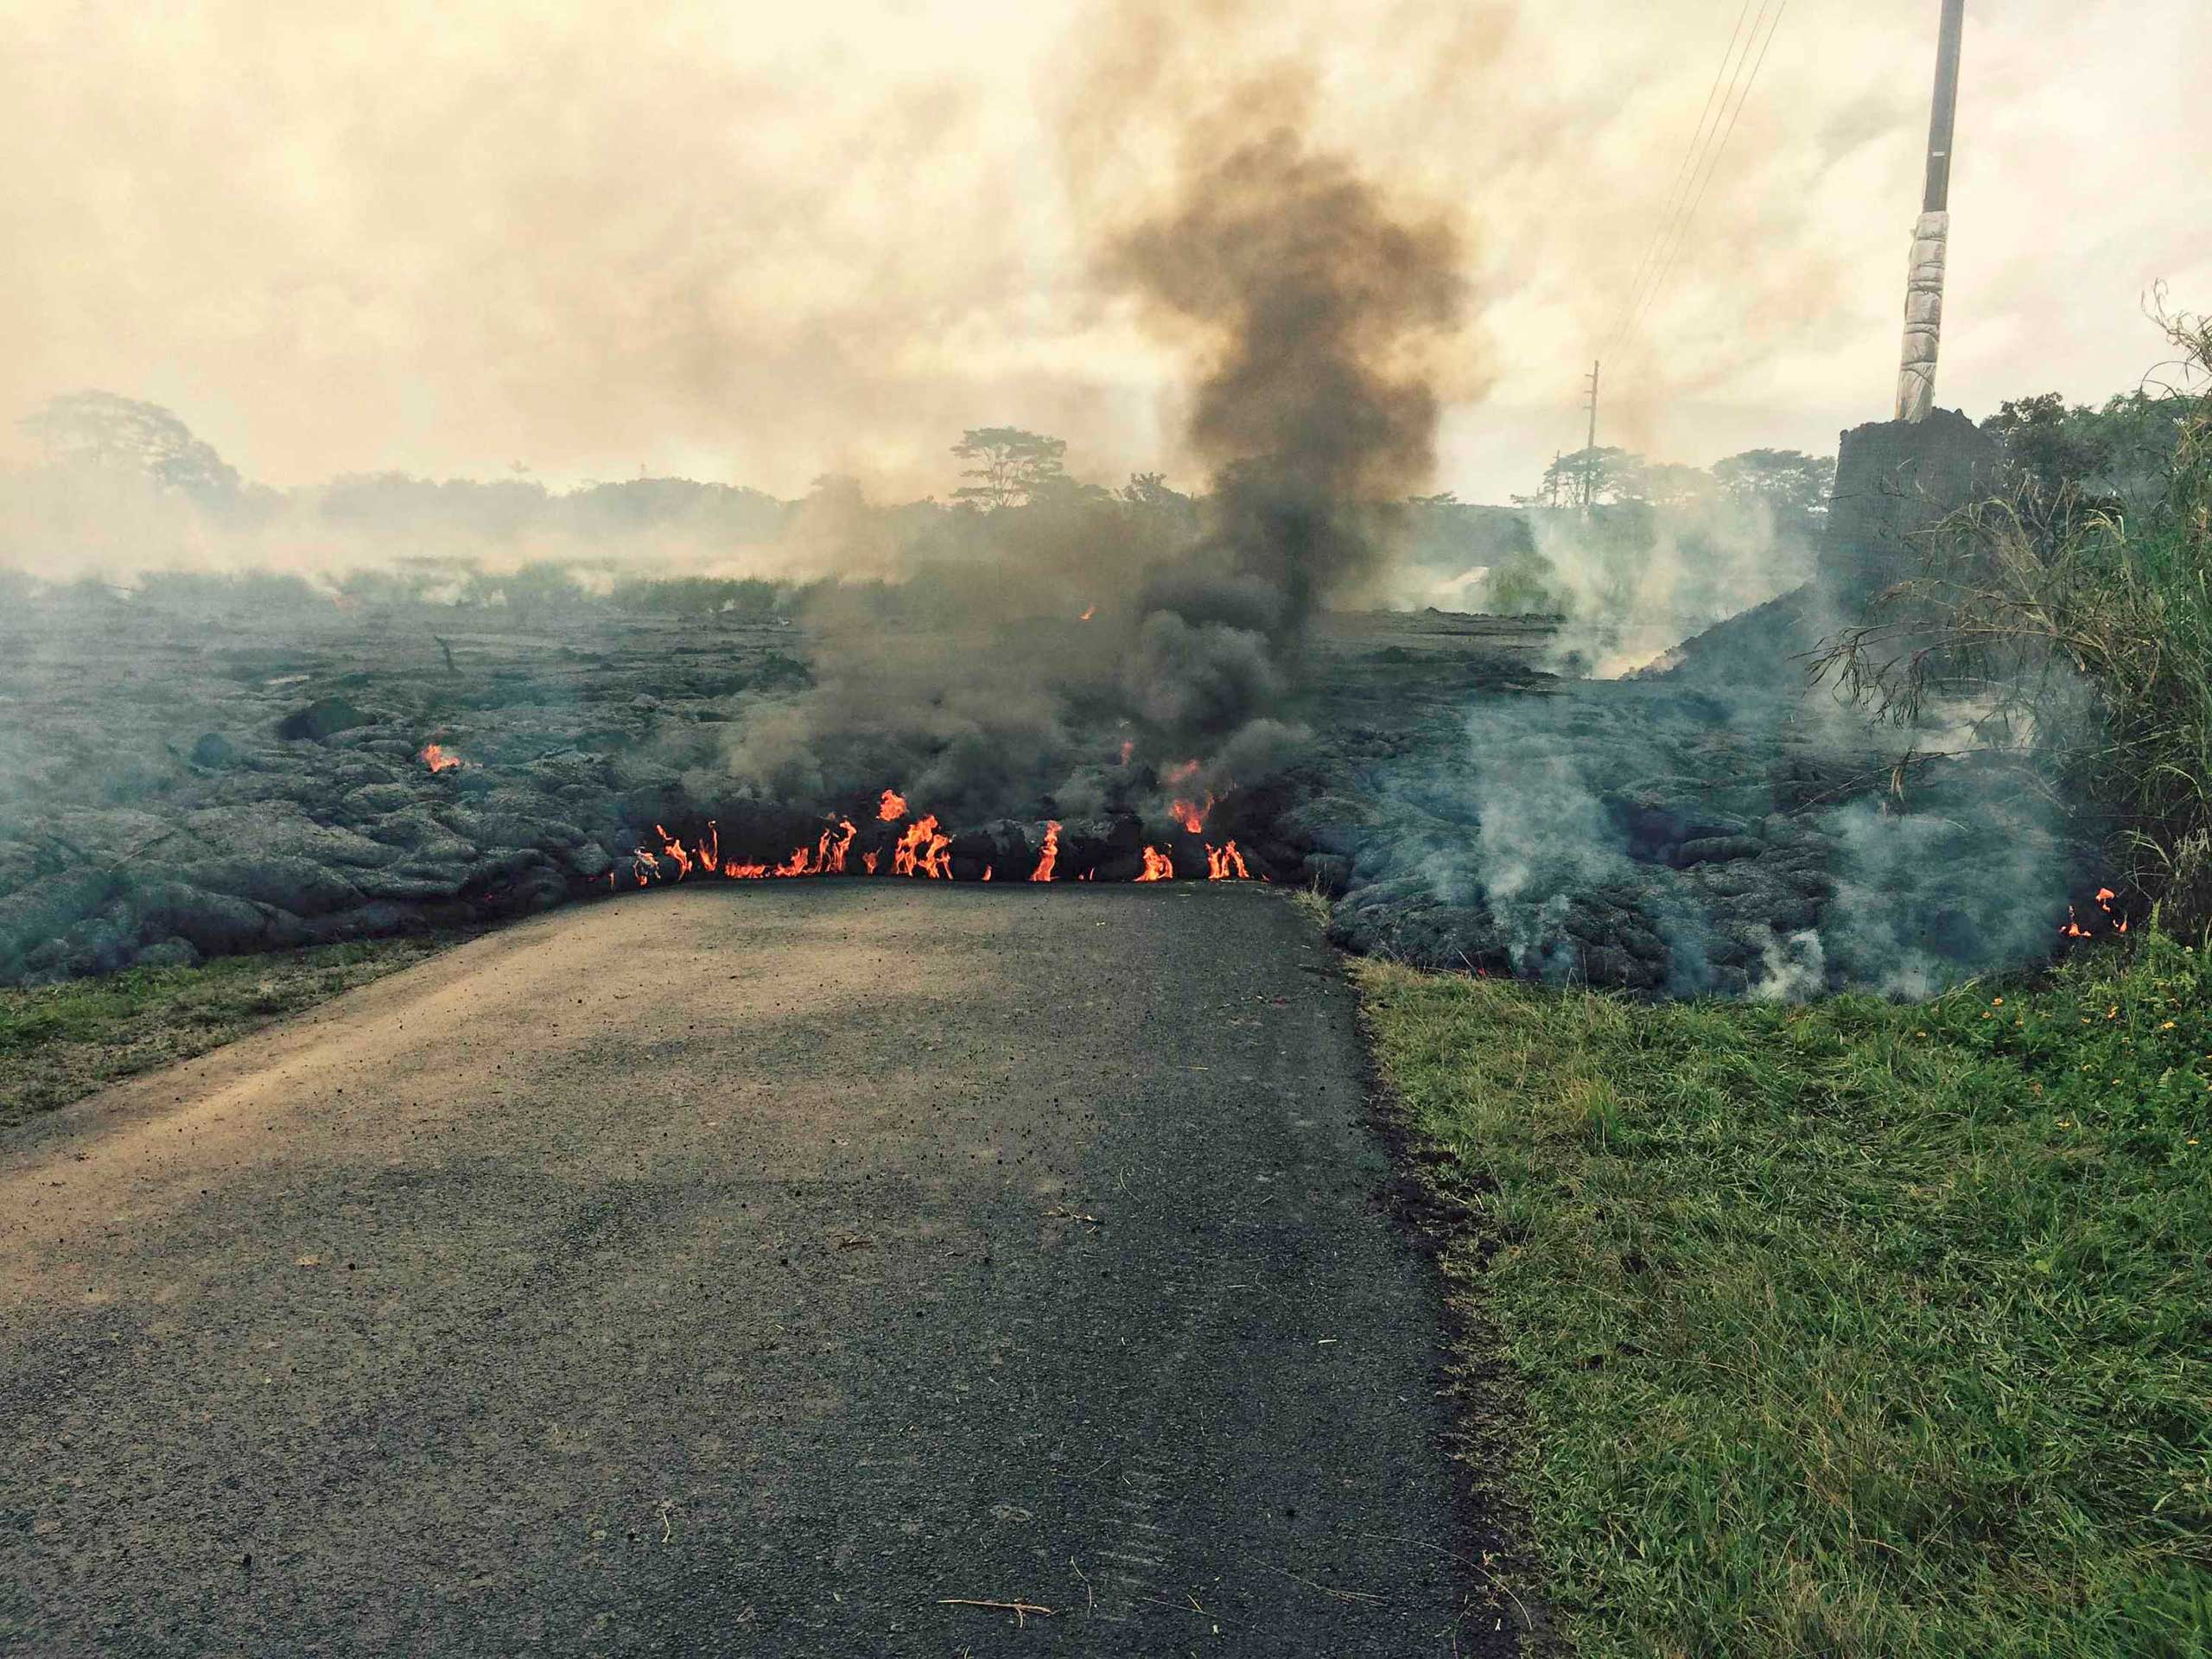 The lava flow from the Kilauea Volcano is seen crossing Apa'a Street/Cemetery Road in this U.S. Geological Survey (USGS) image taken near the village of Pahoa, Hawaii Oct. 25, 2014.